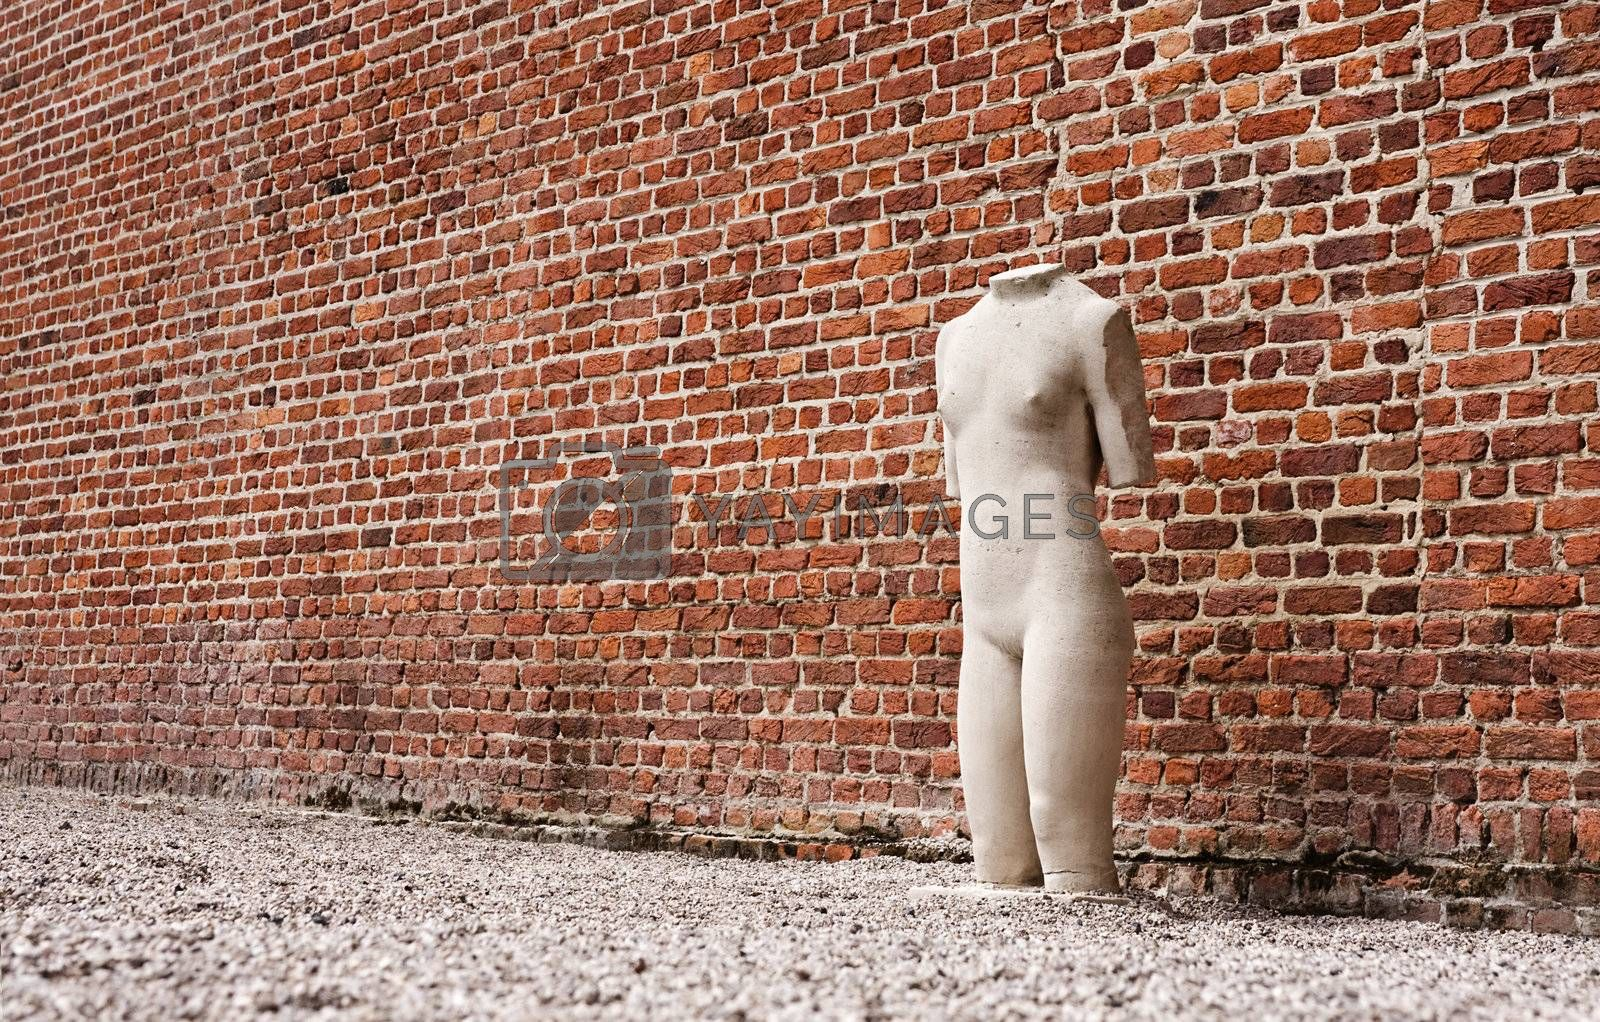 Lonely sculpture standing next to red-brick wall